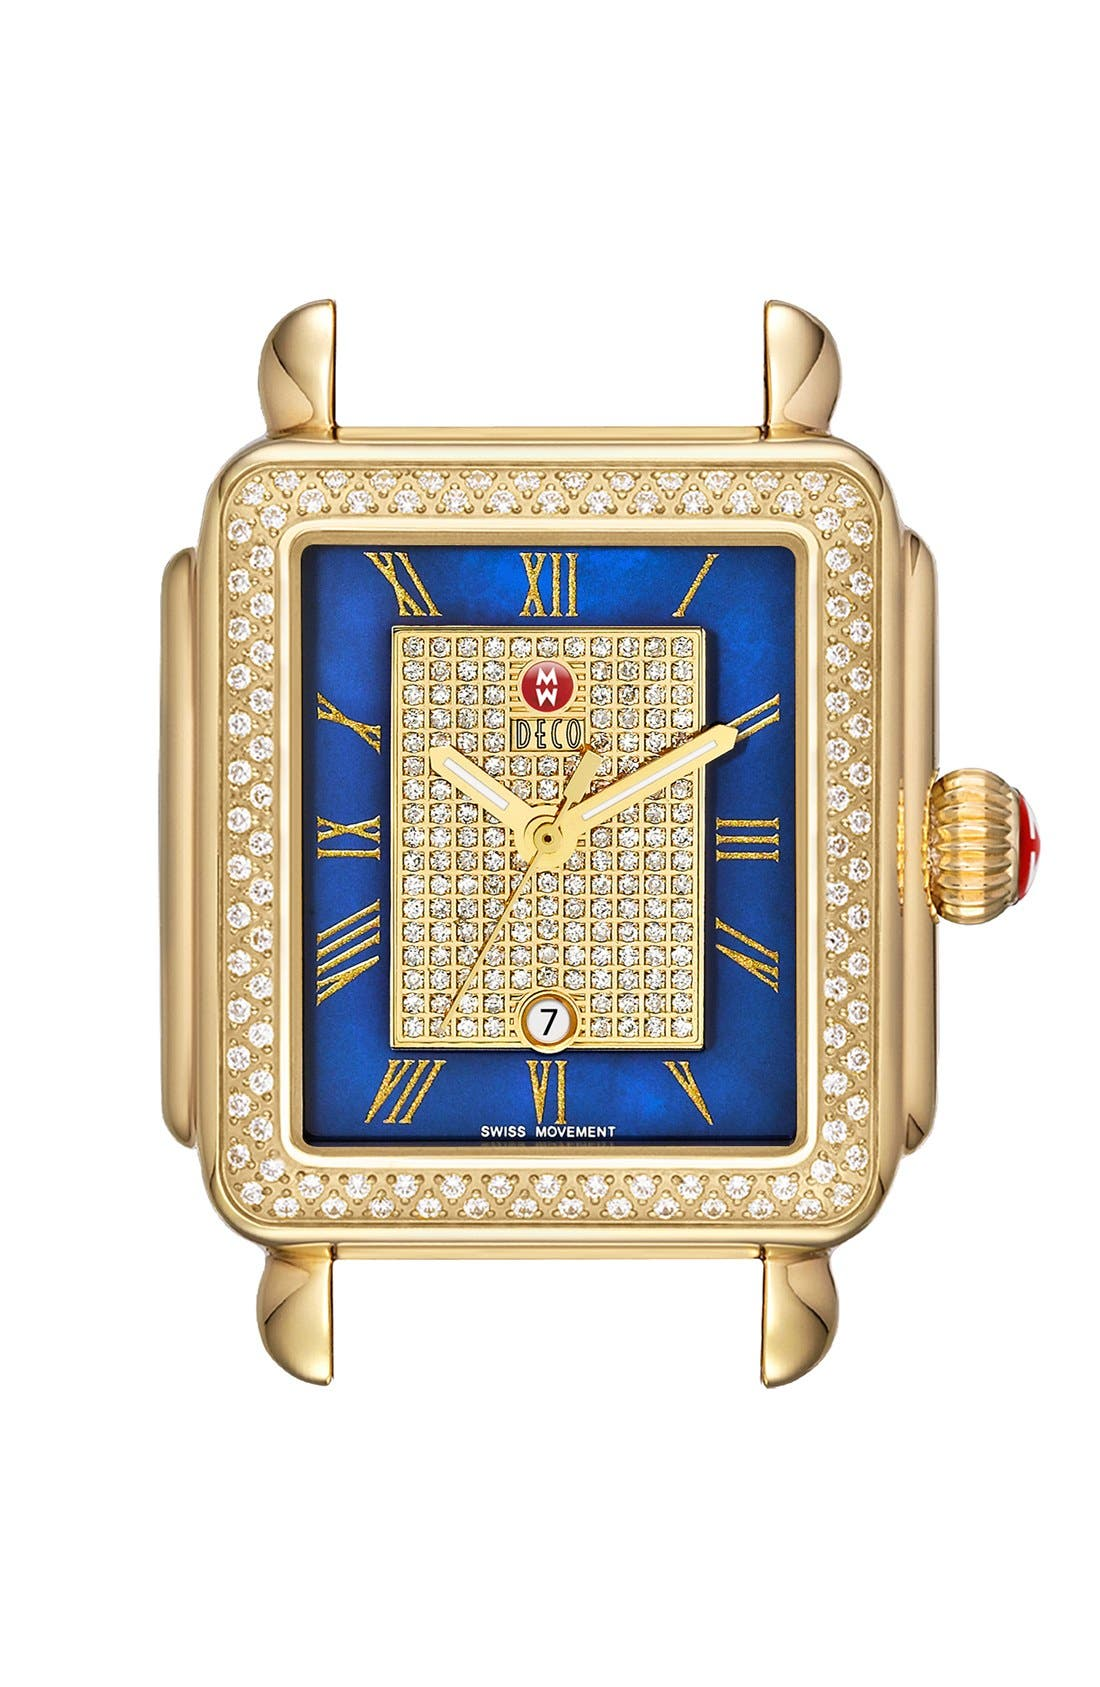 Main Image - MICHELE 'Deco' Diamond & Mother-of-Pearl Dial Watch Case, 33mm x 35mm